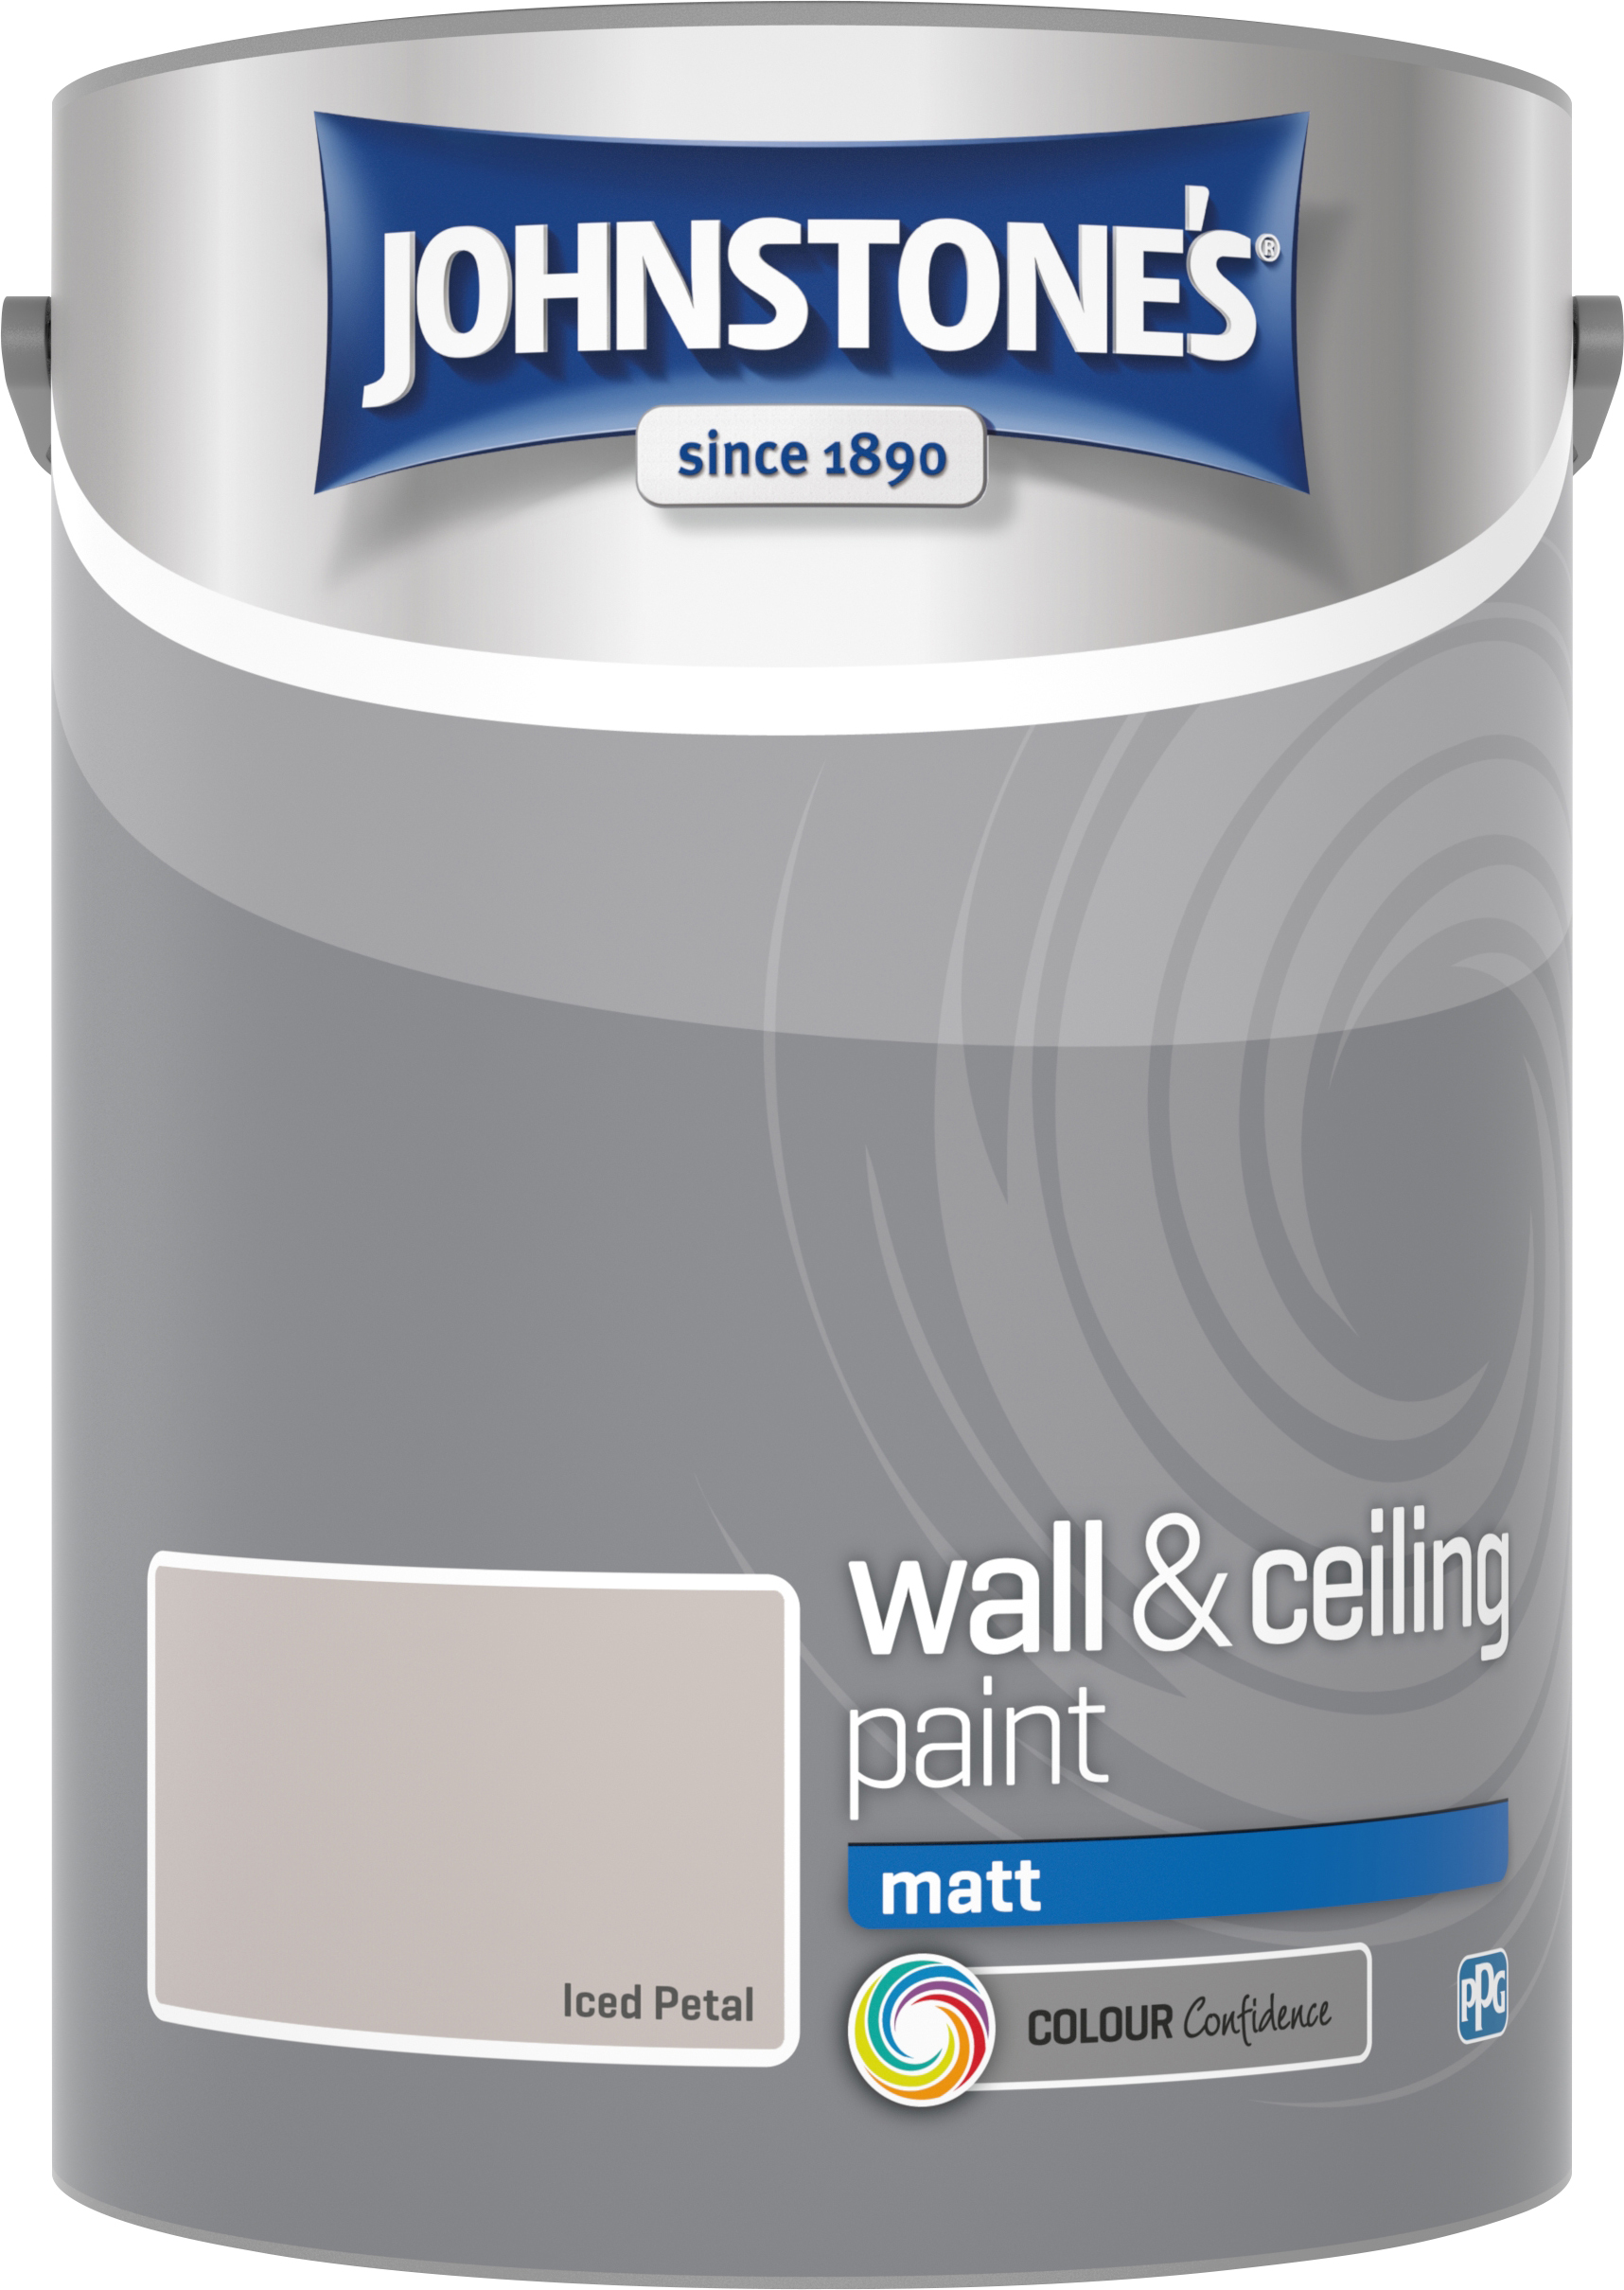 Johnstone's 304059 5 Litre Matt Emulsion Paint - Iced Petal